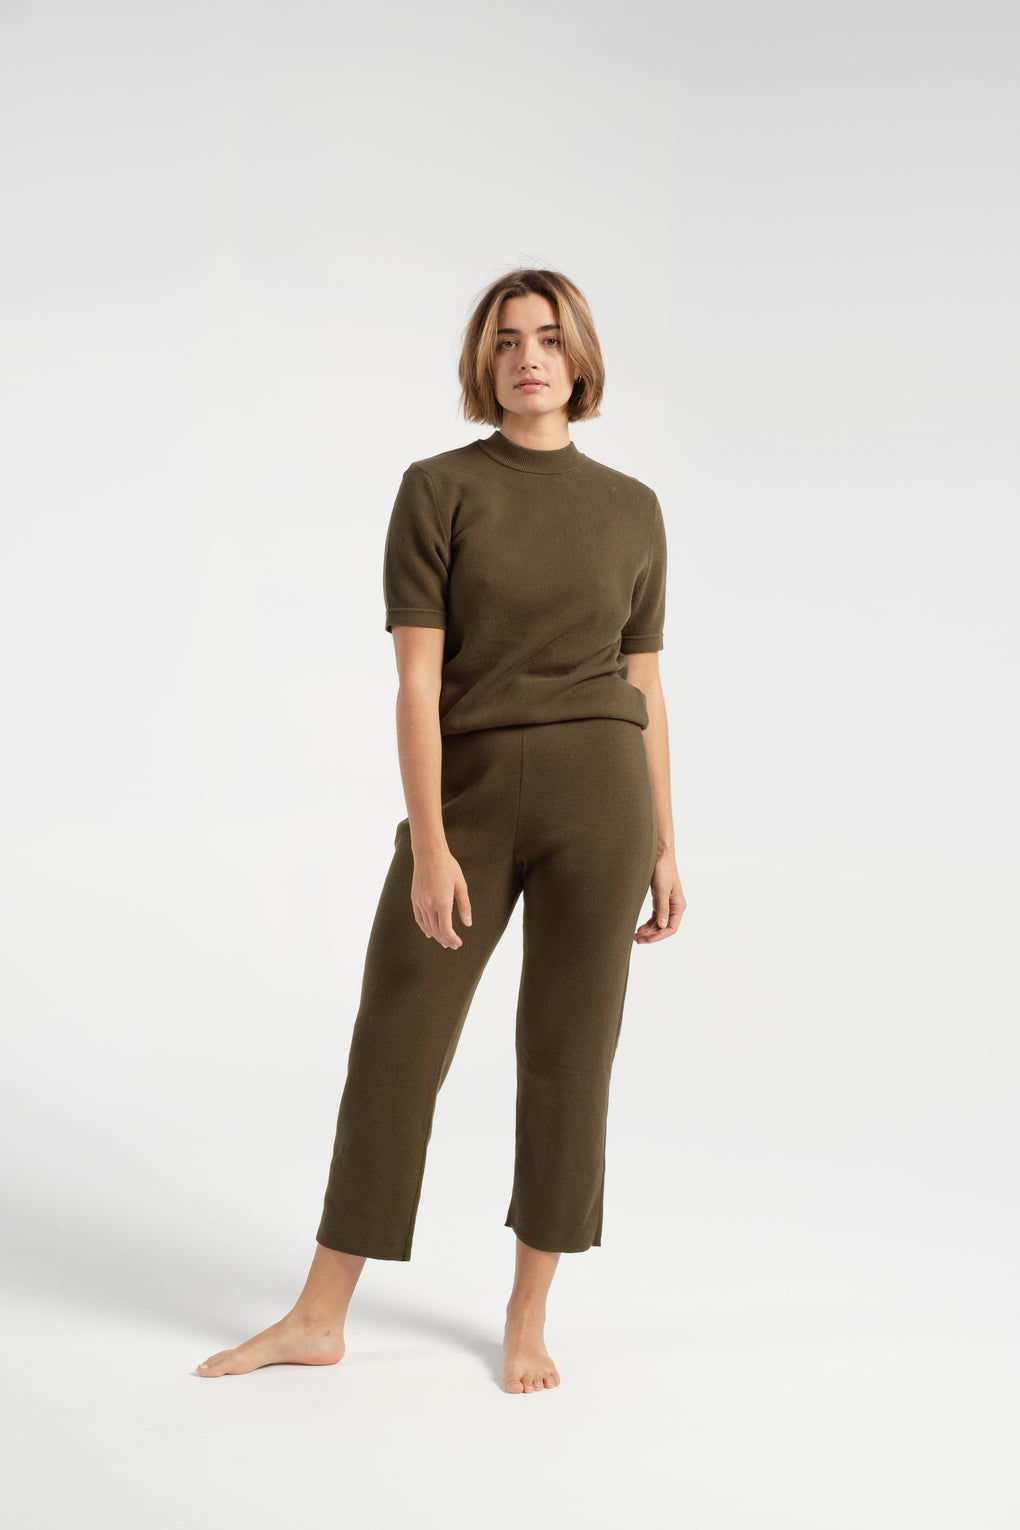 7115 by Szeki-7115 by Szeki Pull Up Knit Trouser-7115 by Szeki trousers-green pants-green knit pants-Idun-St. Paul